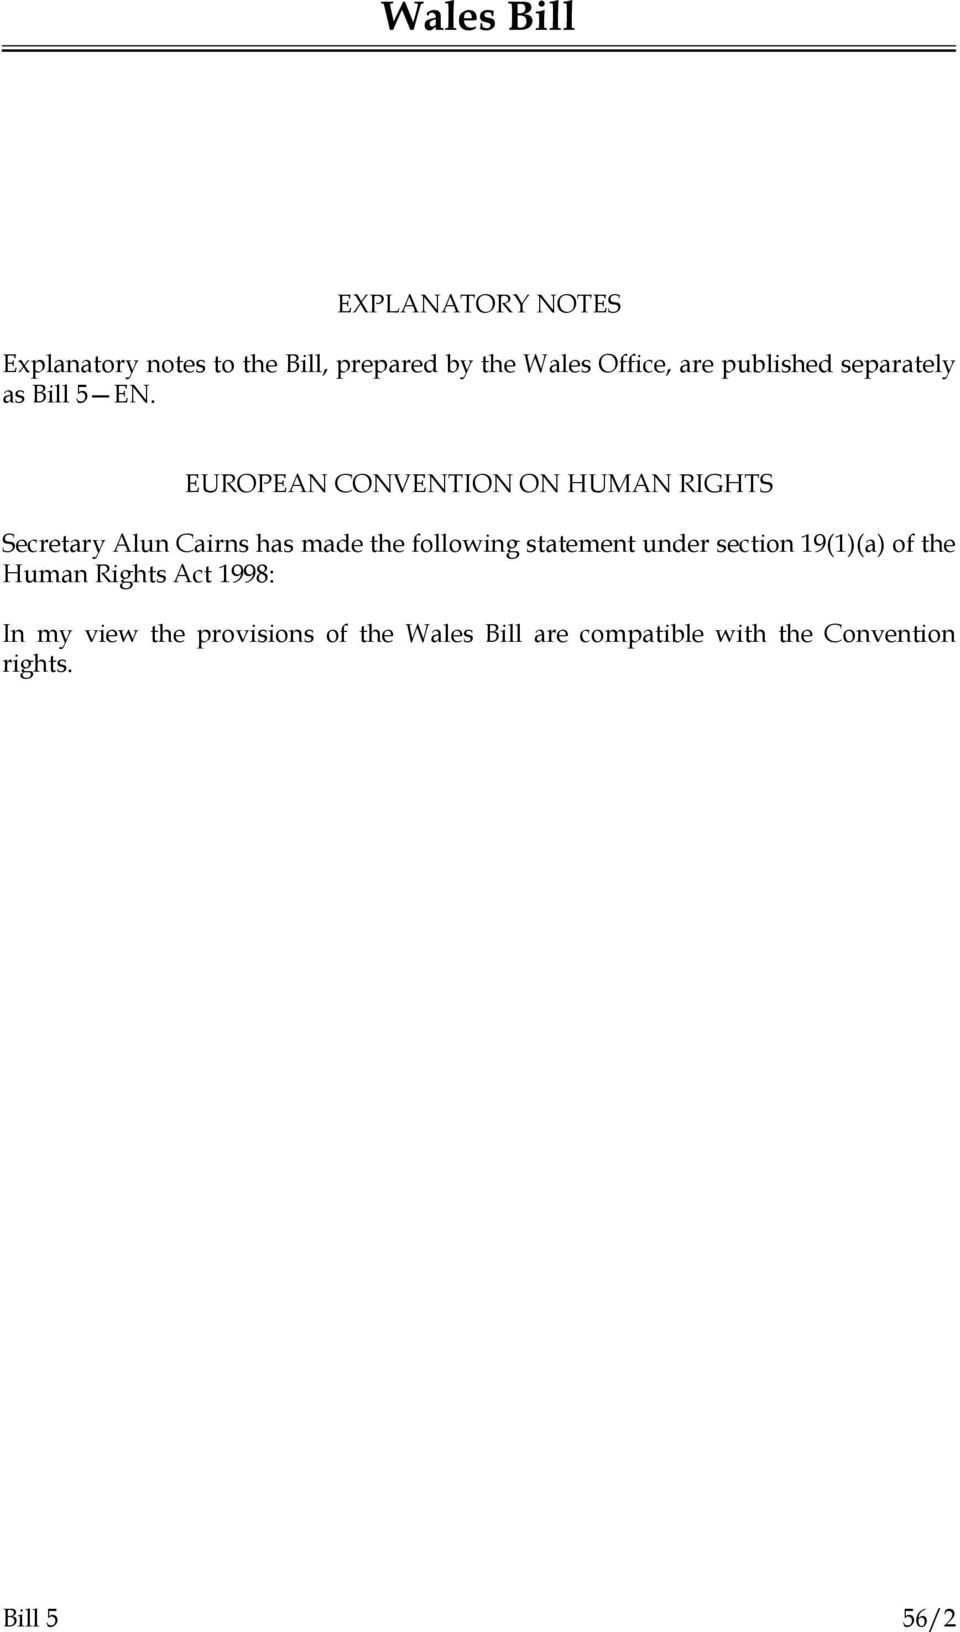 EUROPEAN CONVENTION ON HUMAN RIGHTS Secretary Alun Cairns has made the following